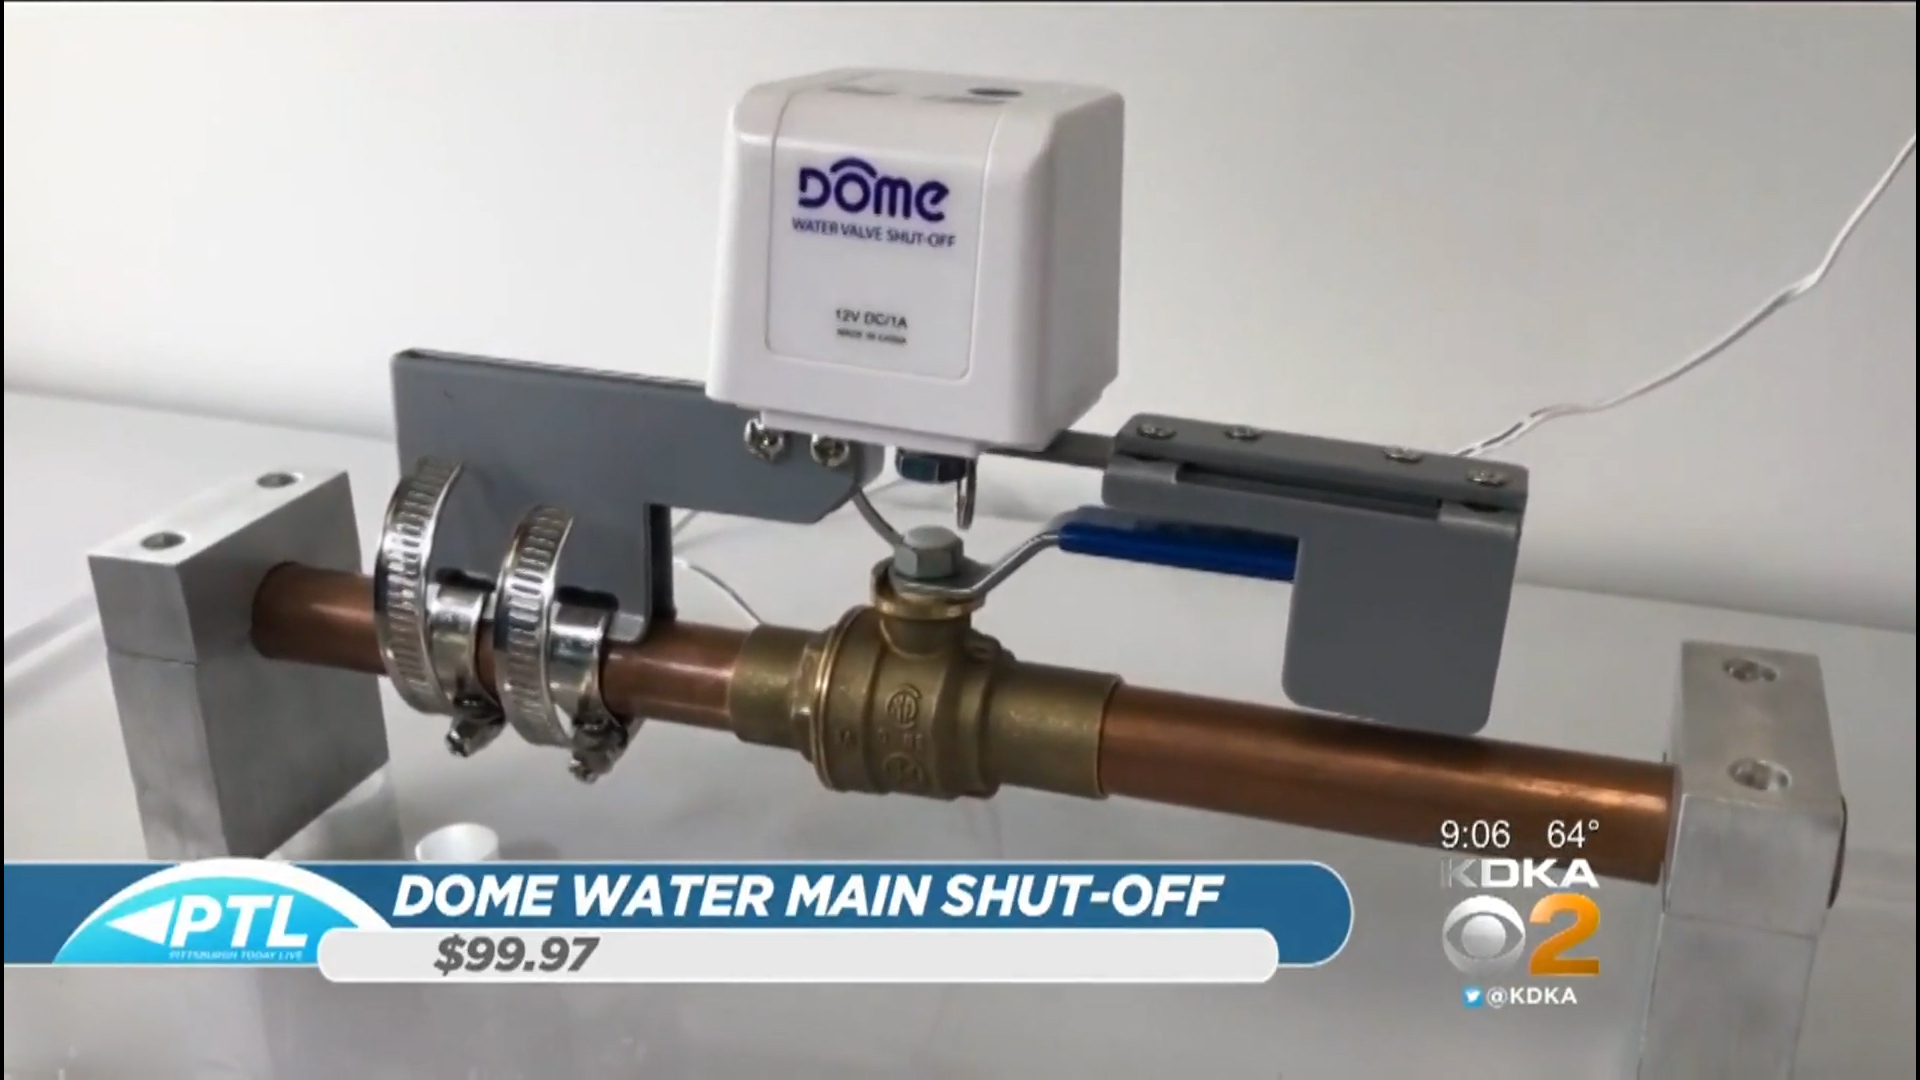 DOME WATER MAIN SHUT-OFF - $99.97Shop Now